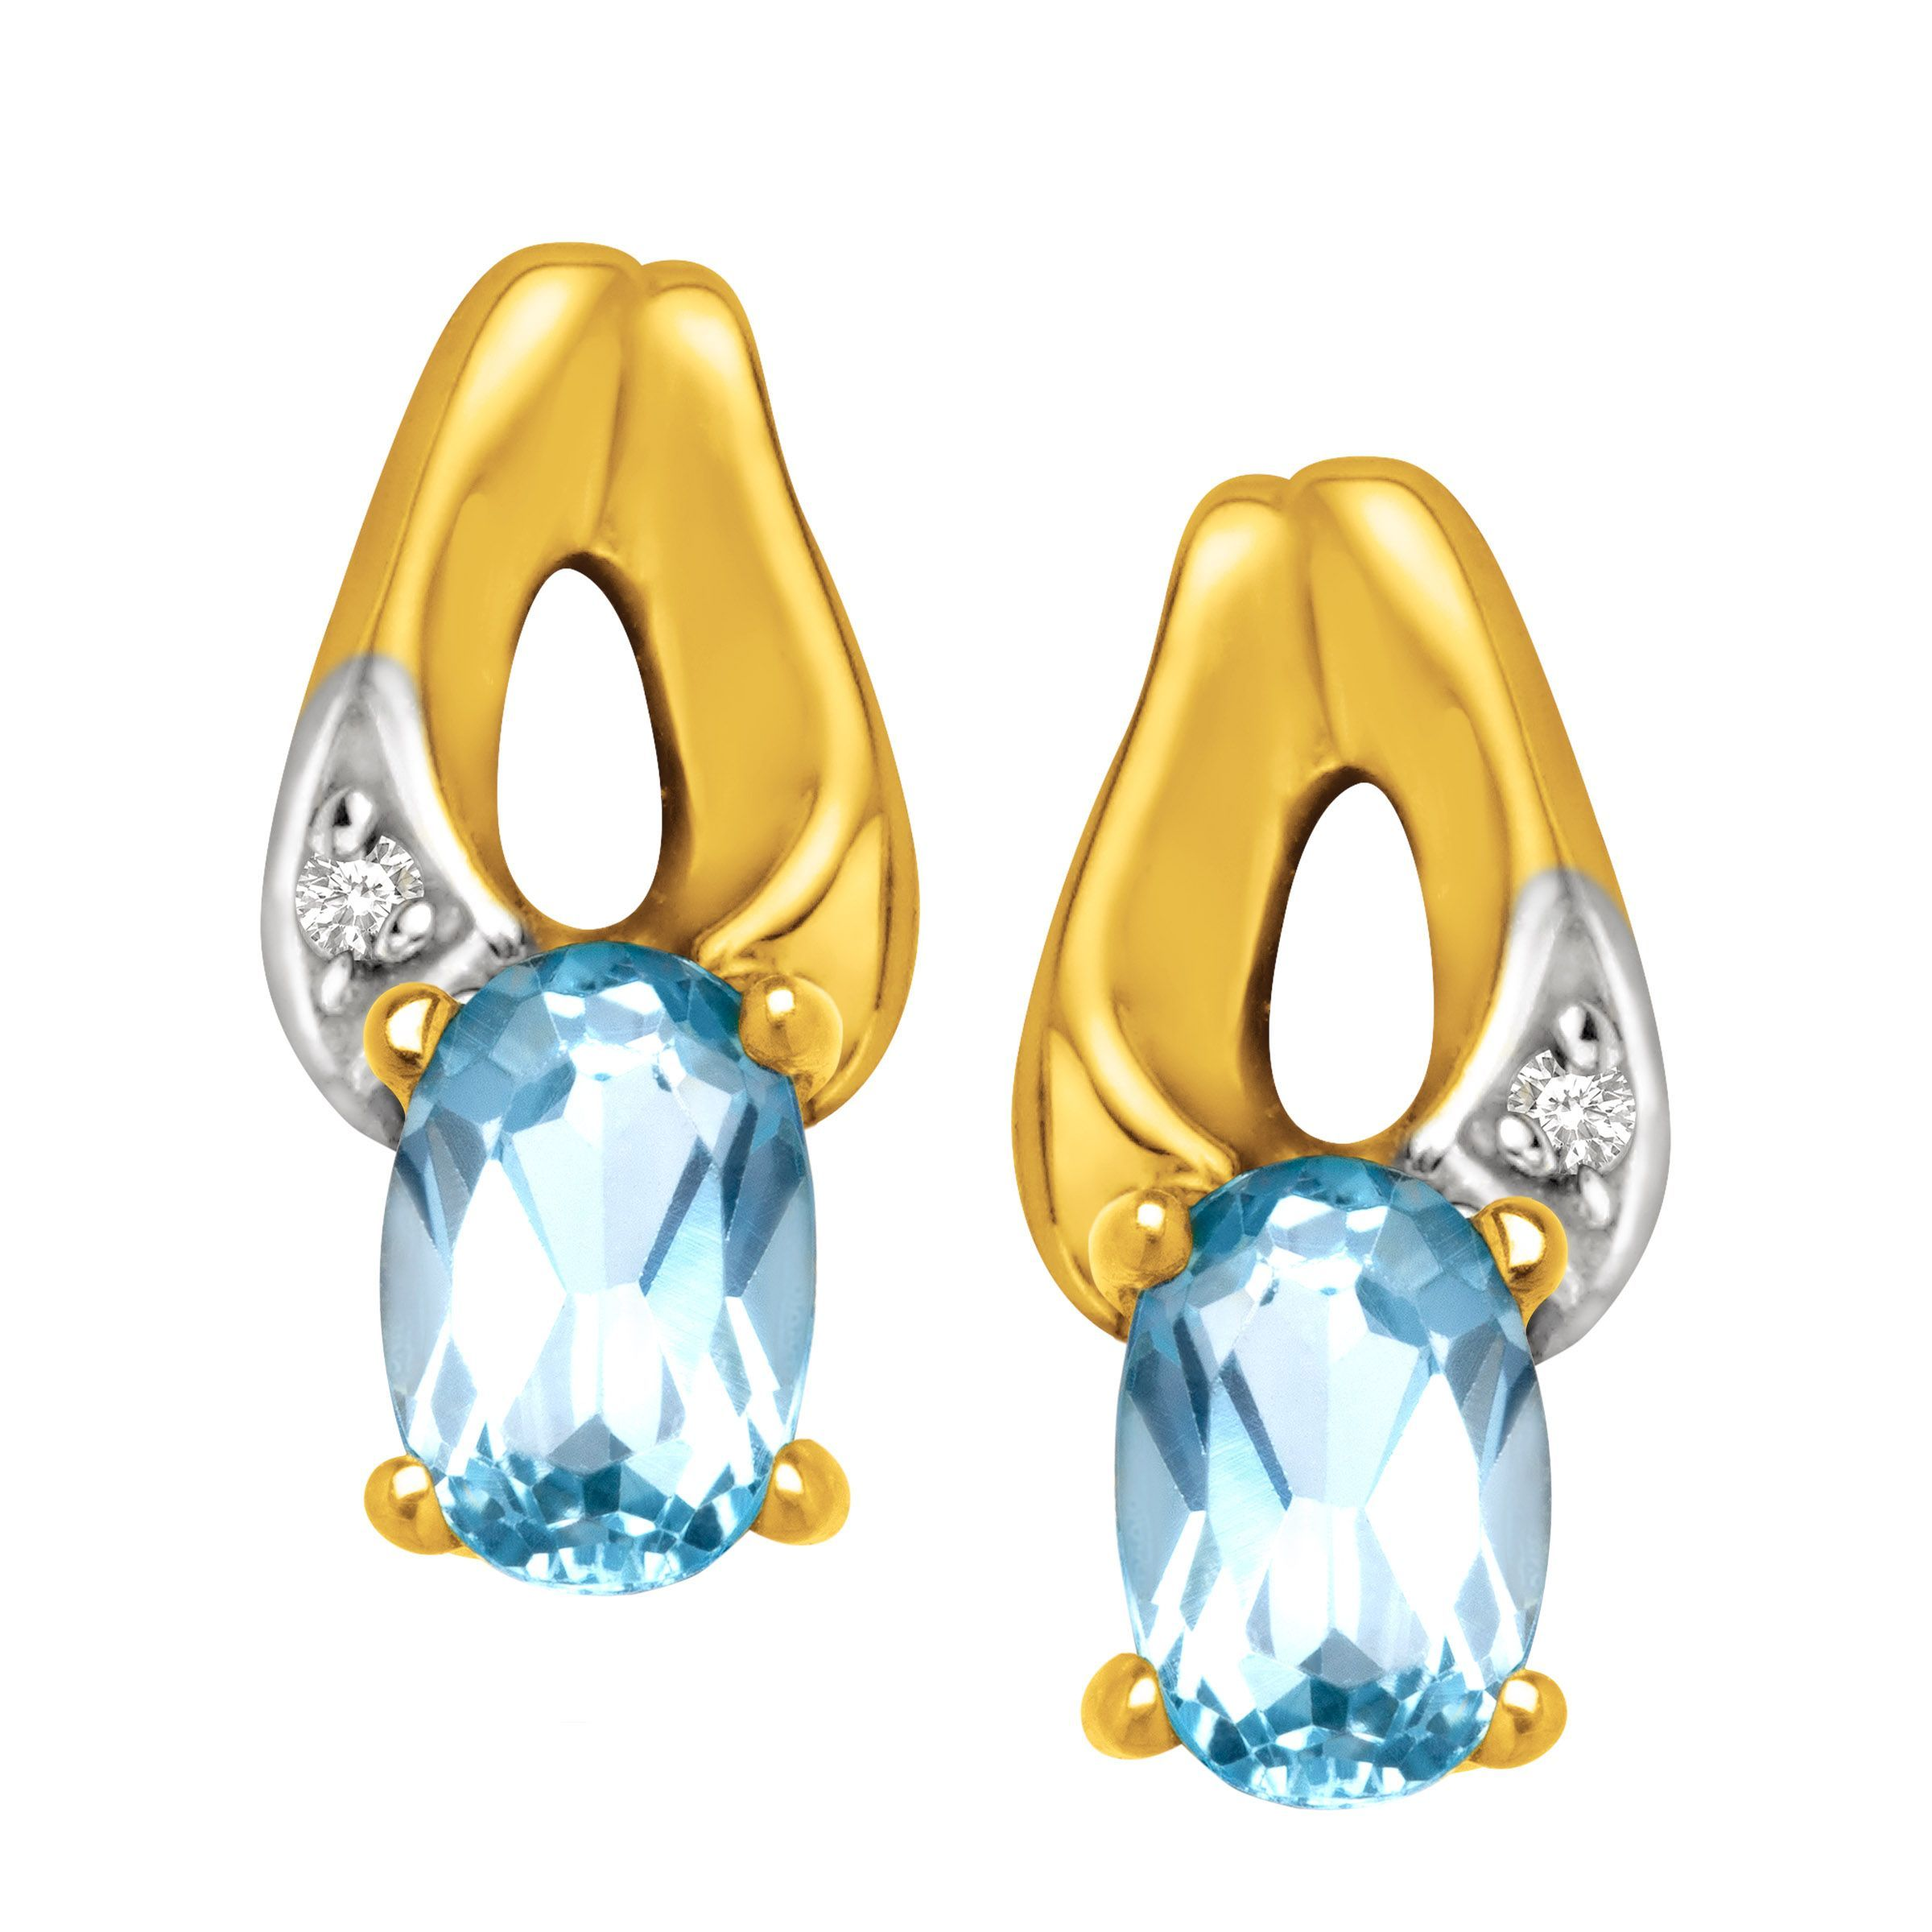 stud aquamarine earrings birthstone david deyong by silver sterling image london marine aqua